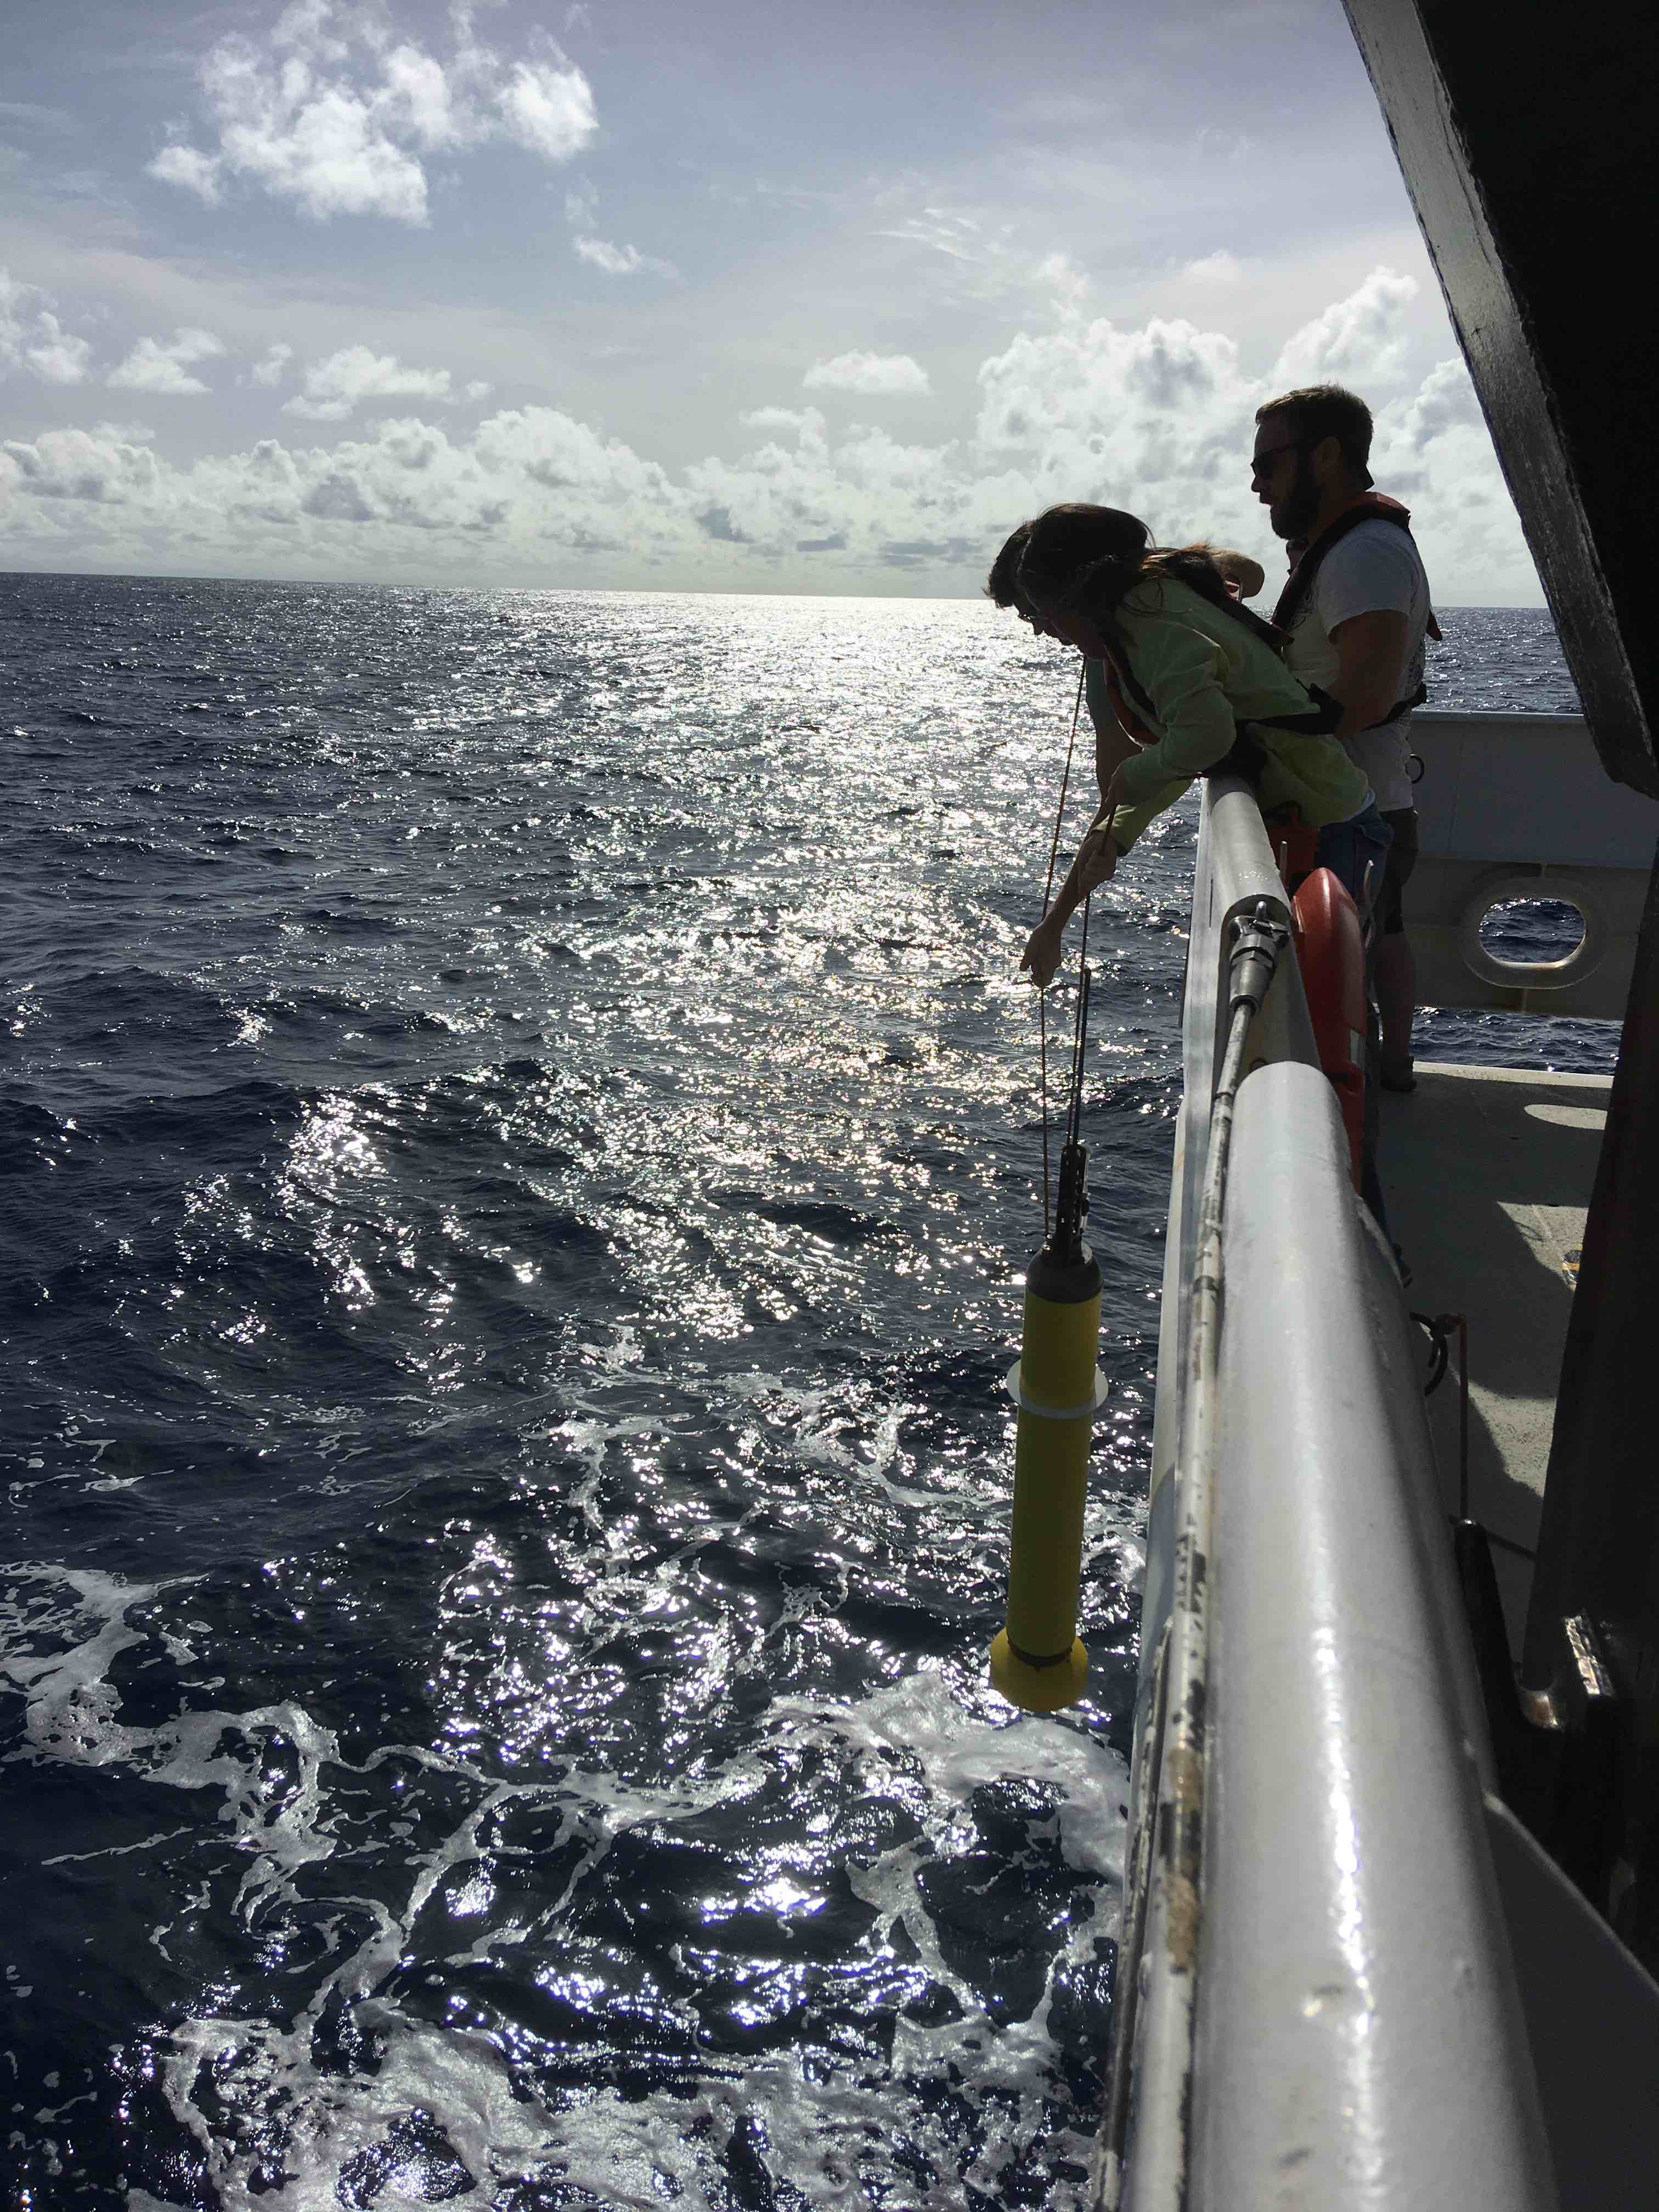 From left to right, Ian, Andy, and Christian deploying an ARGO float